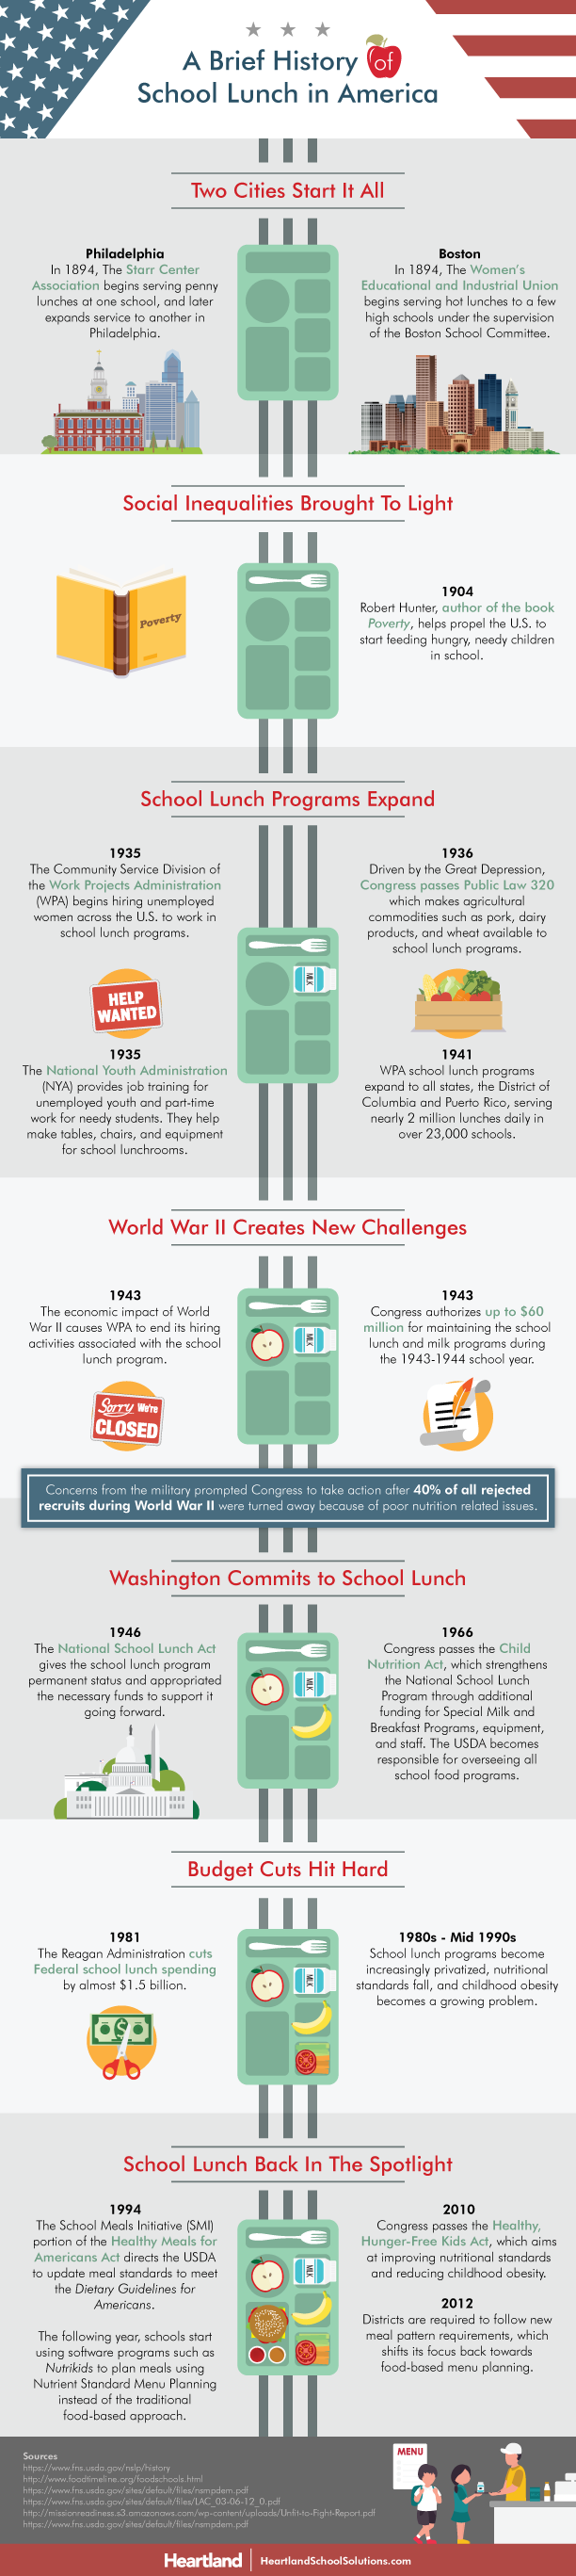 school-lunch-history-infographic.png